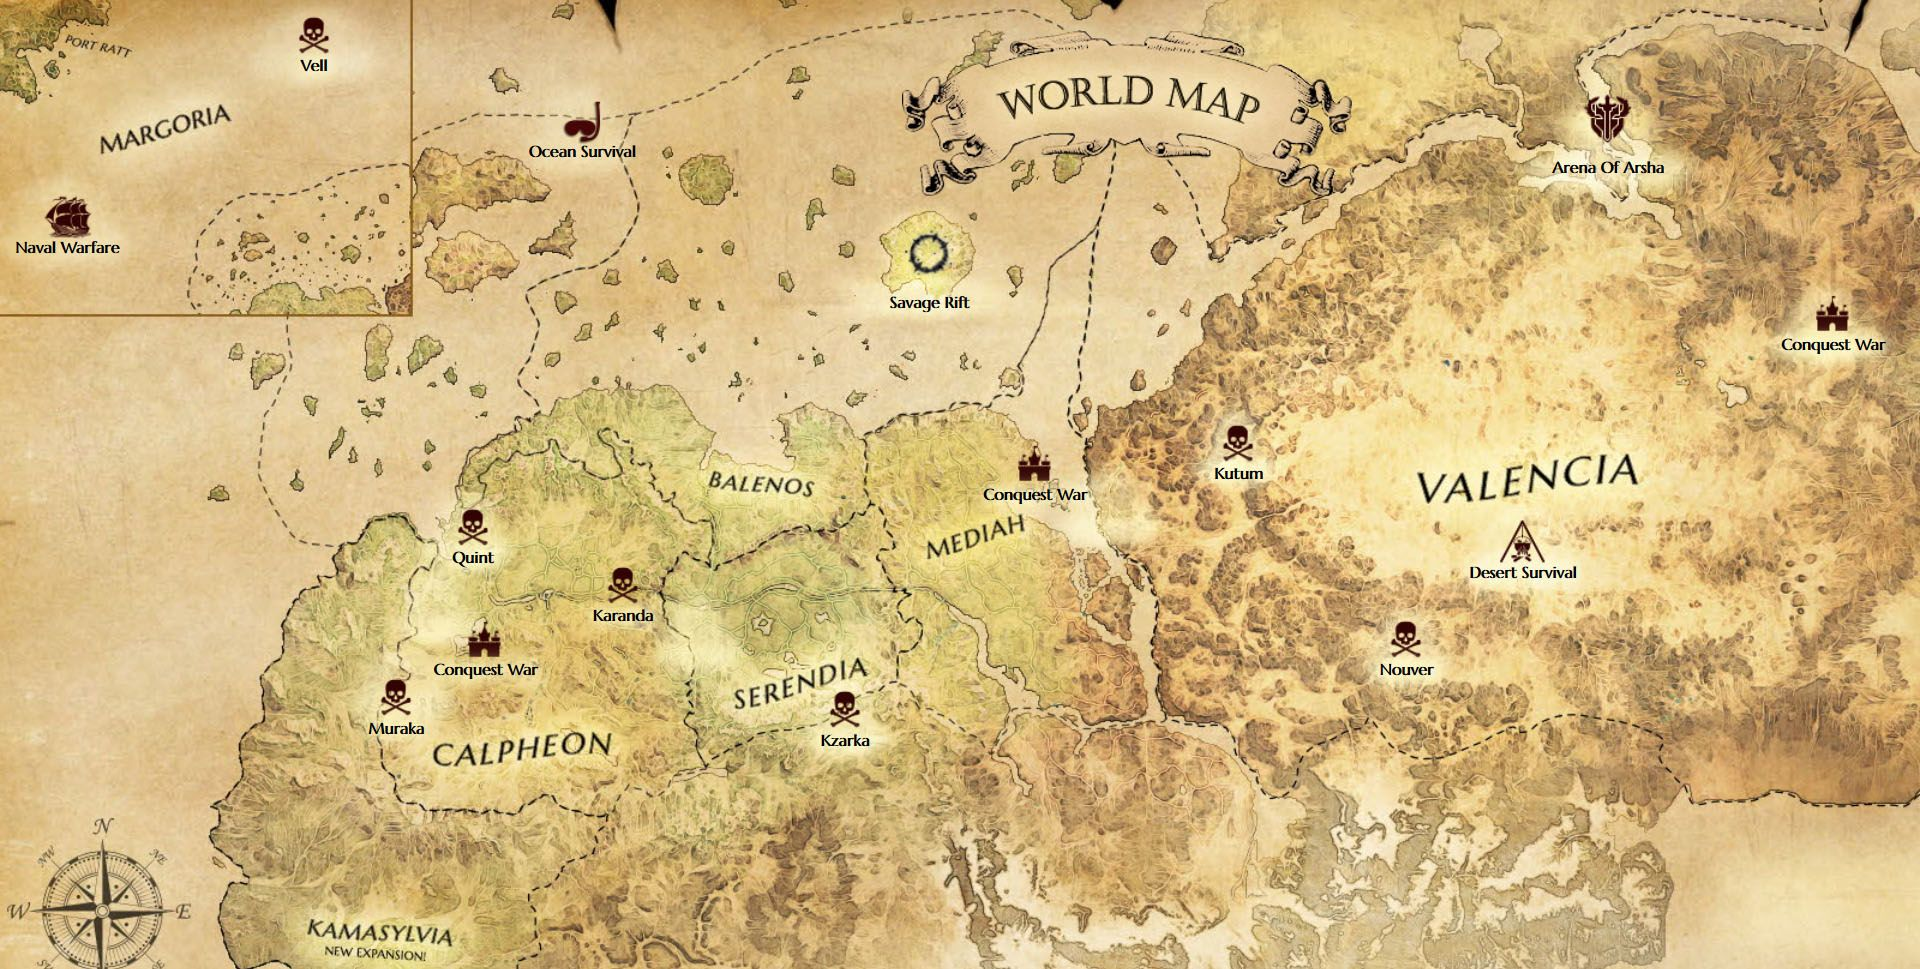 Black desert world map maps pinterest black desert world map gumiabroncs